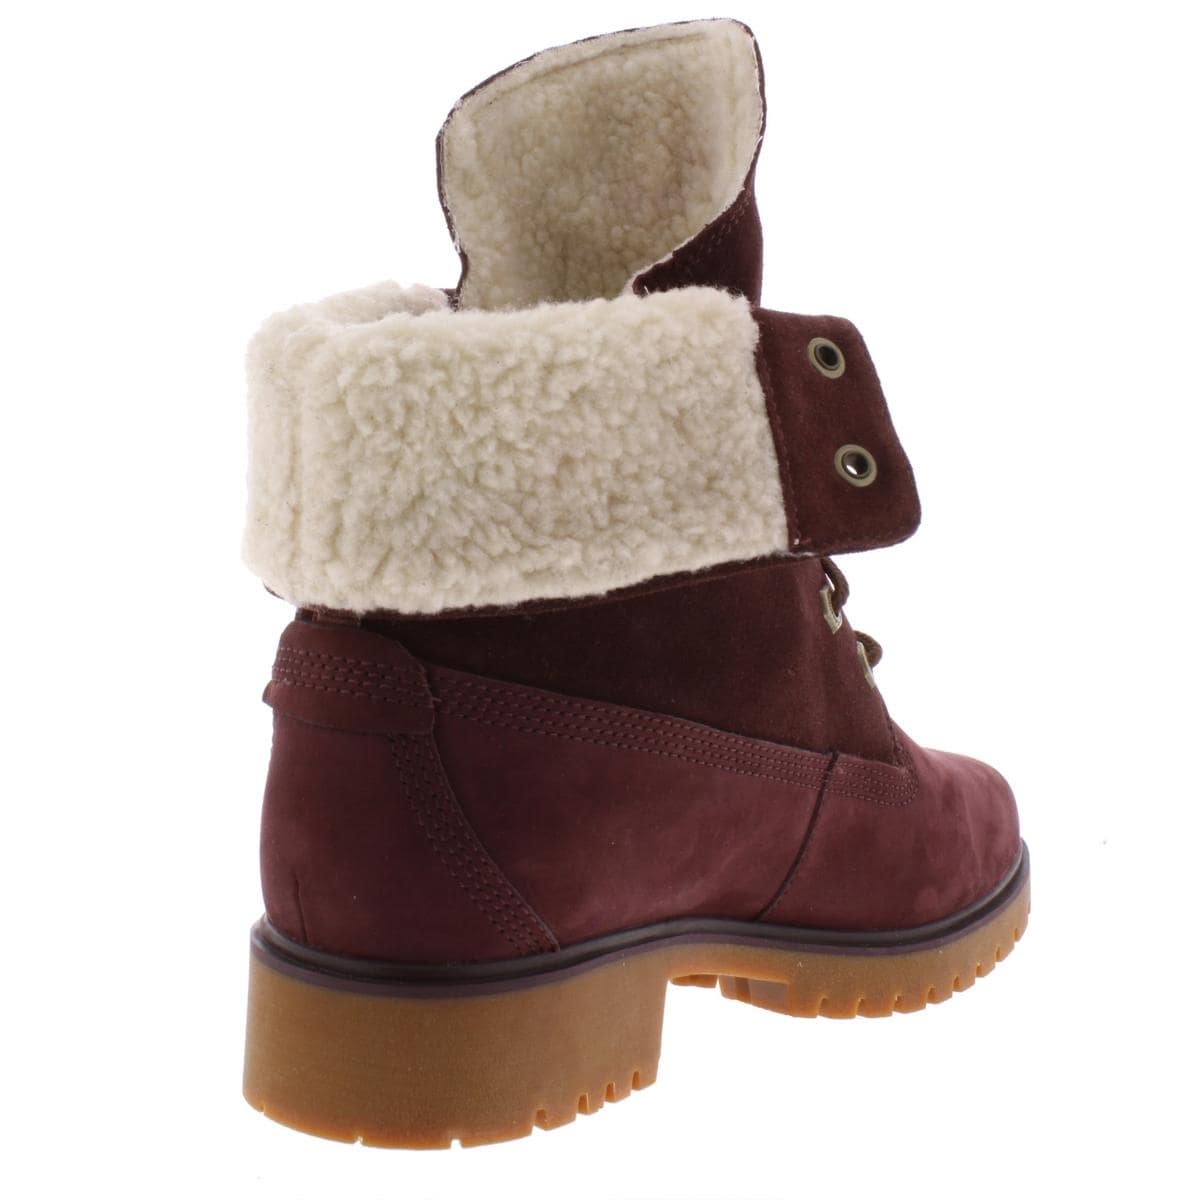 Timberland Womens Jayne Winter Boots Leather Fleece Lined